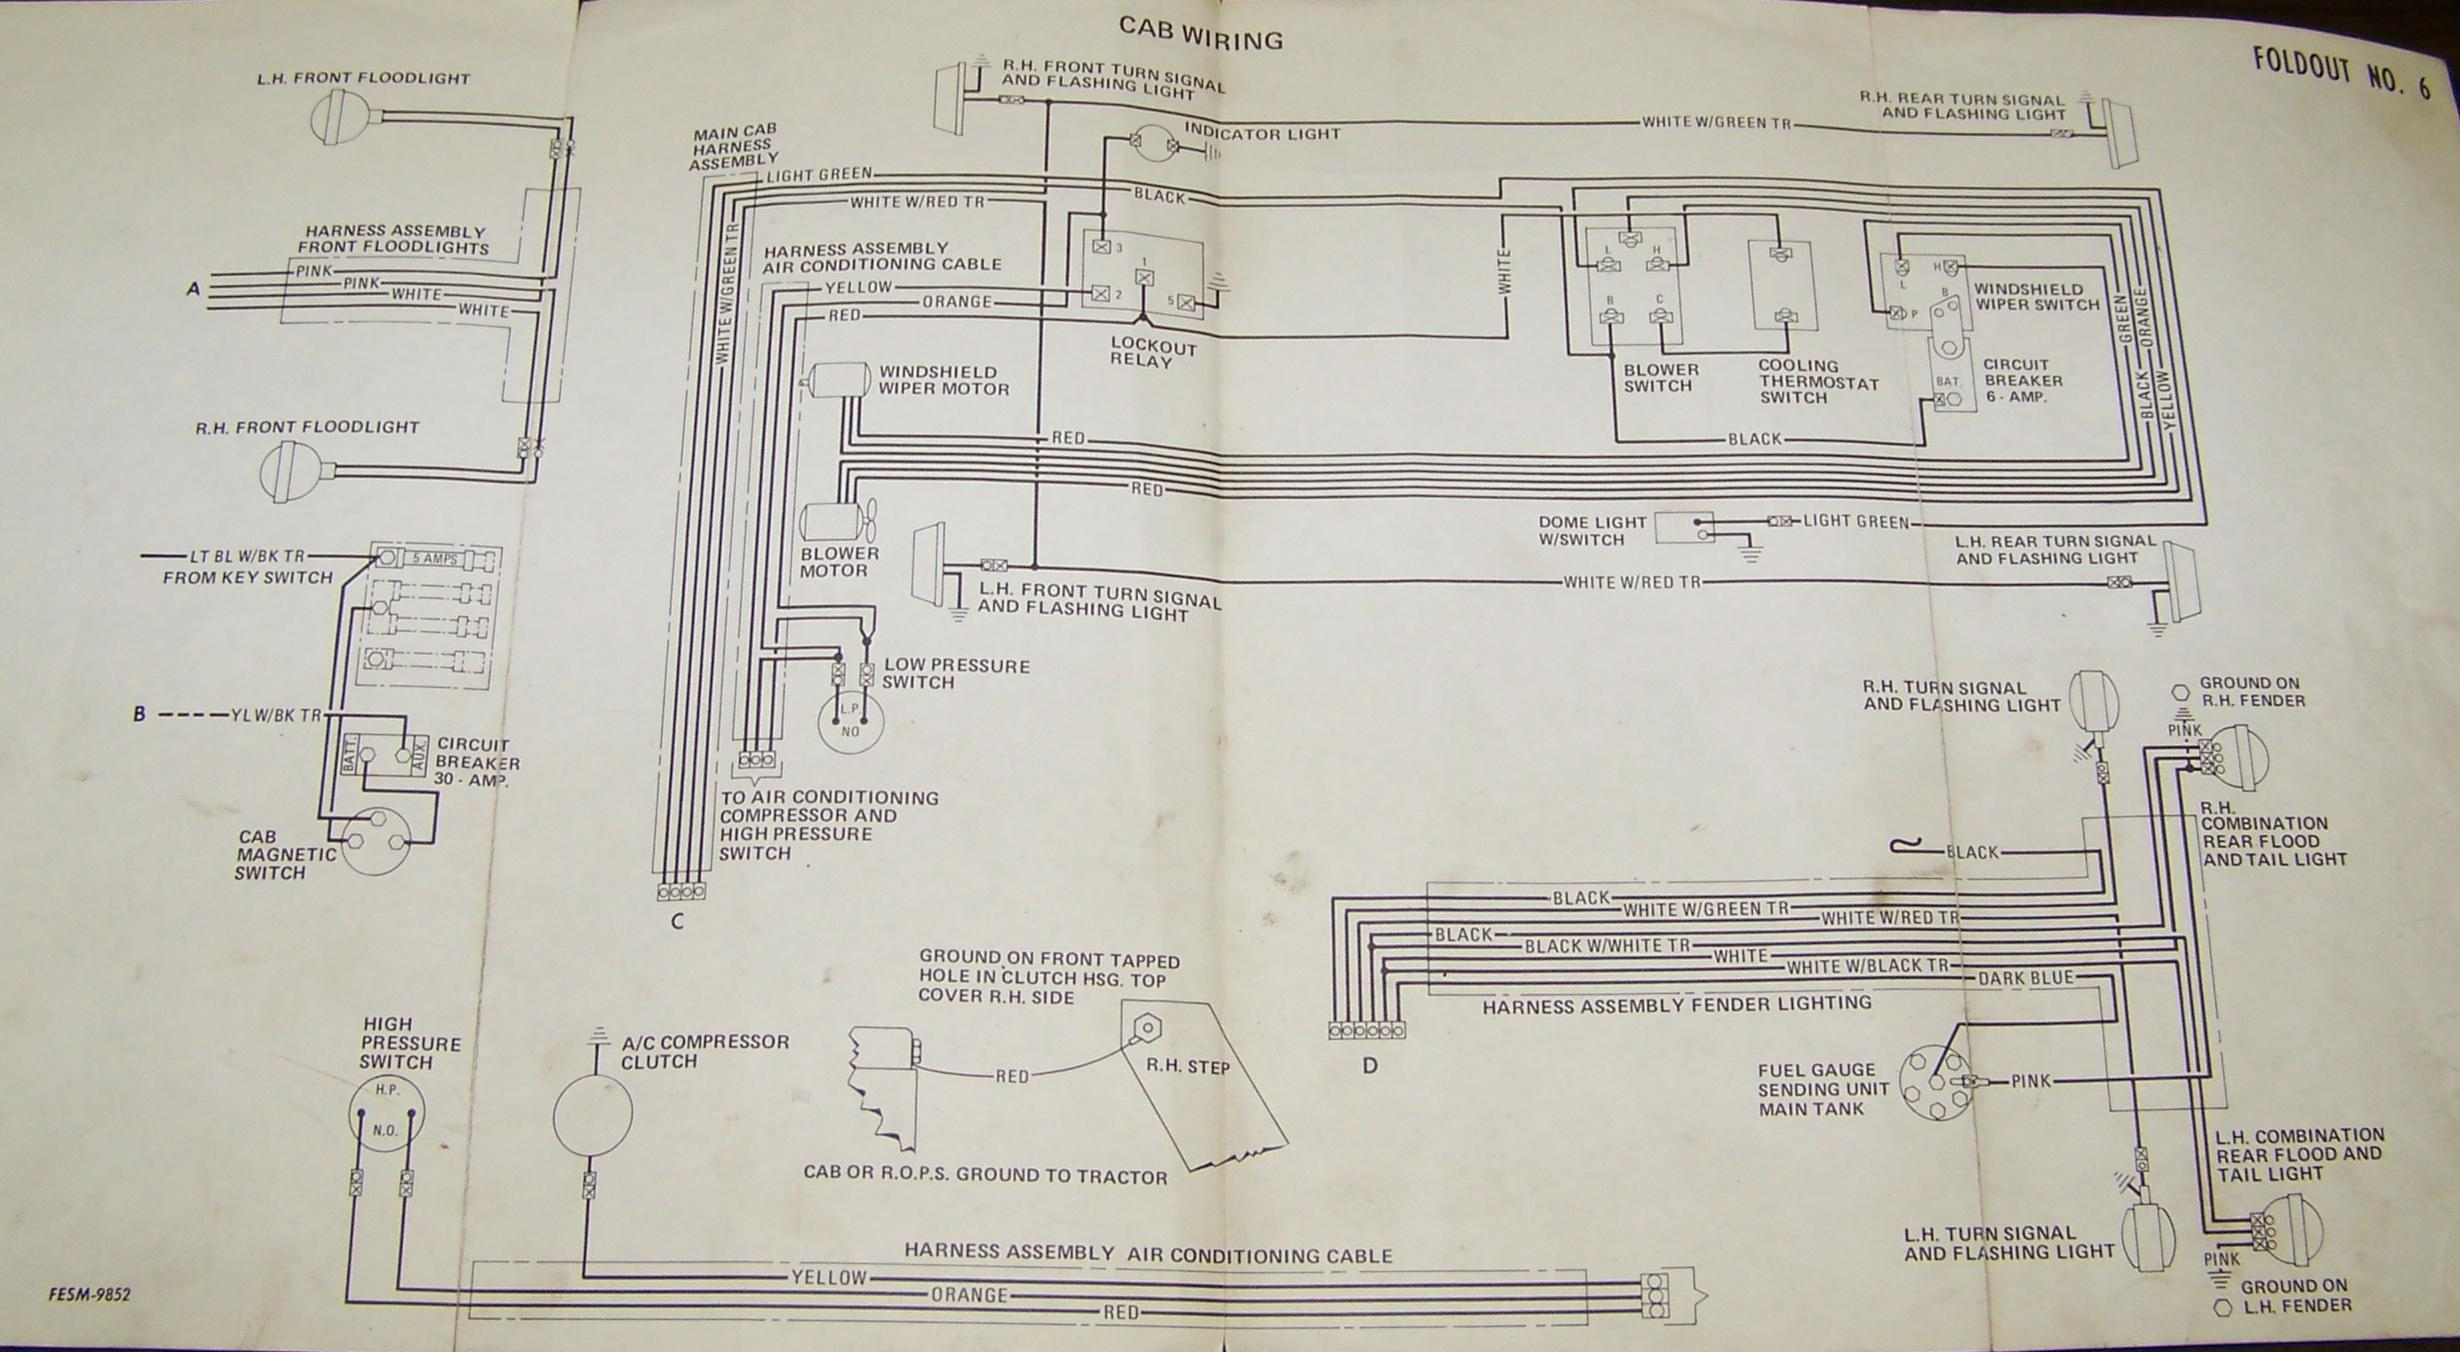 86series6 carter & gruenewald co inc ih farmall tractor electrical international 1086 wiring diagram at edmiracle.co